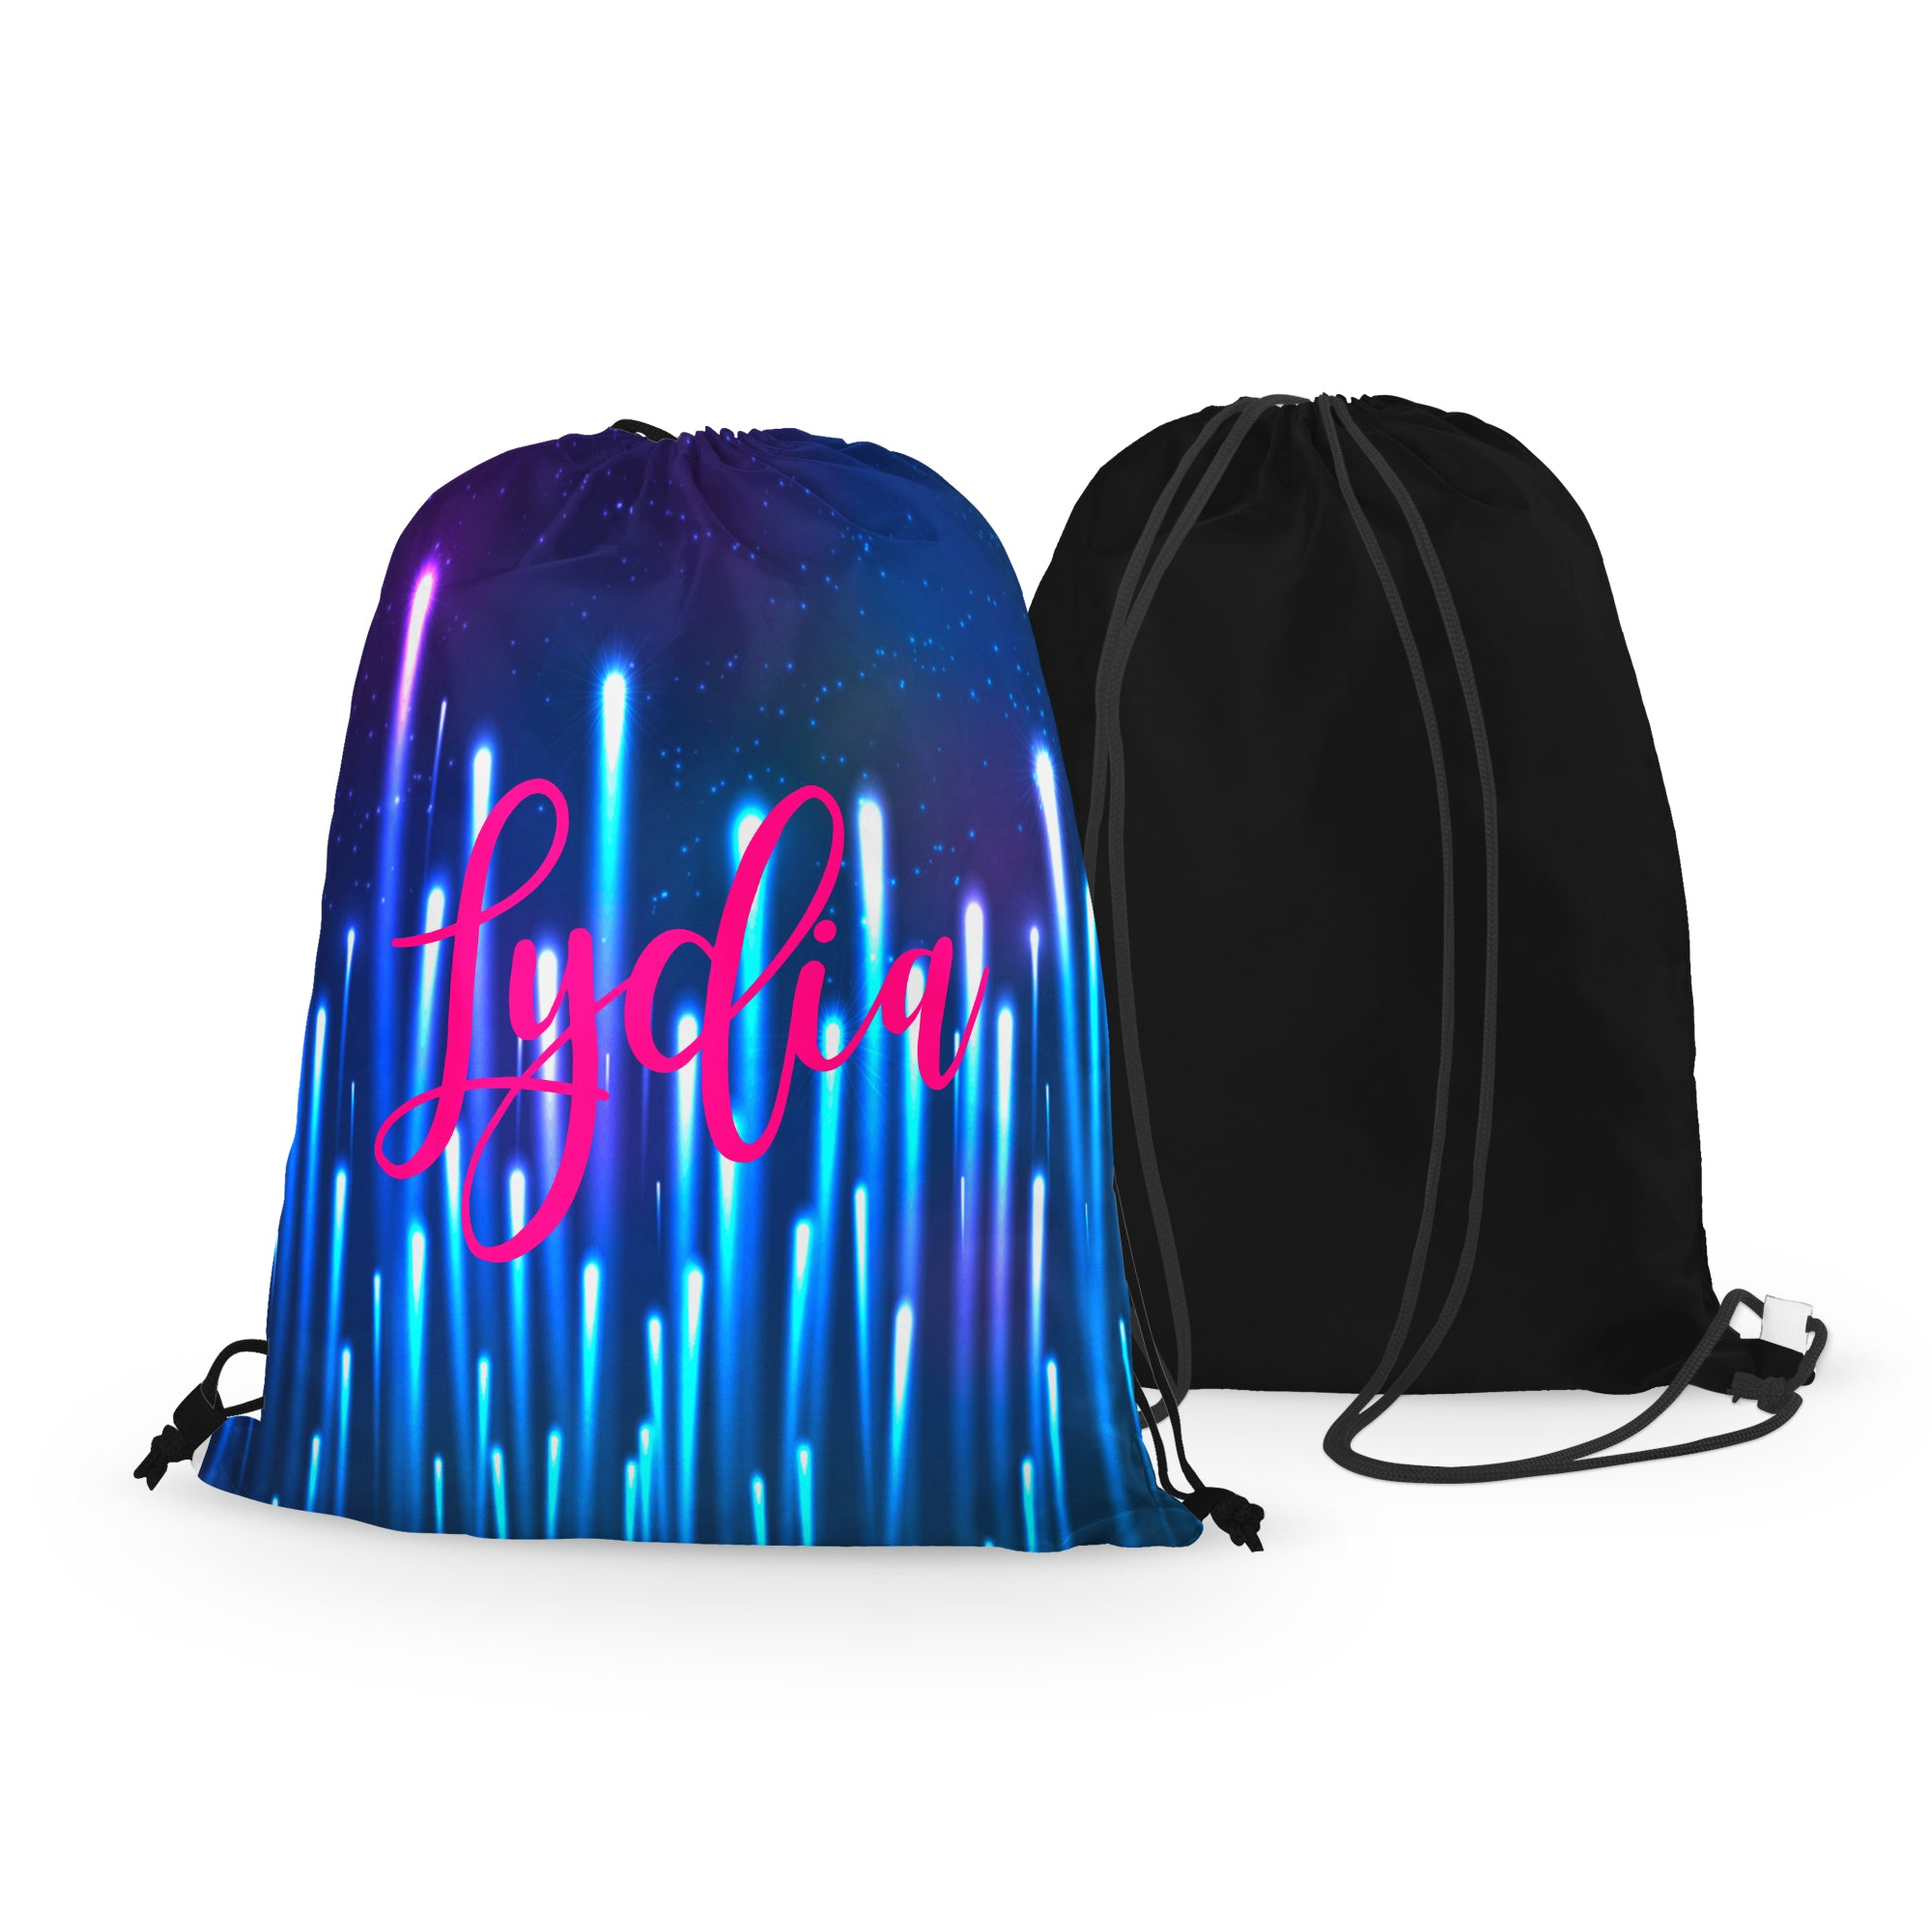 Personalized Northern Lights Drawstring Bag